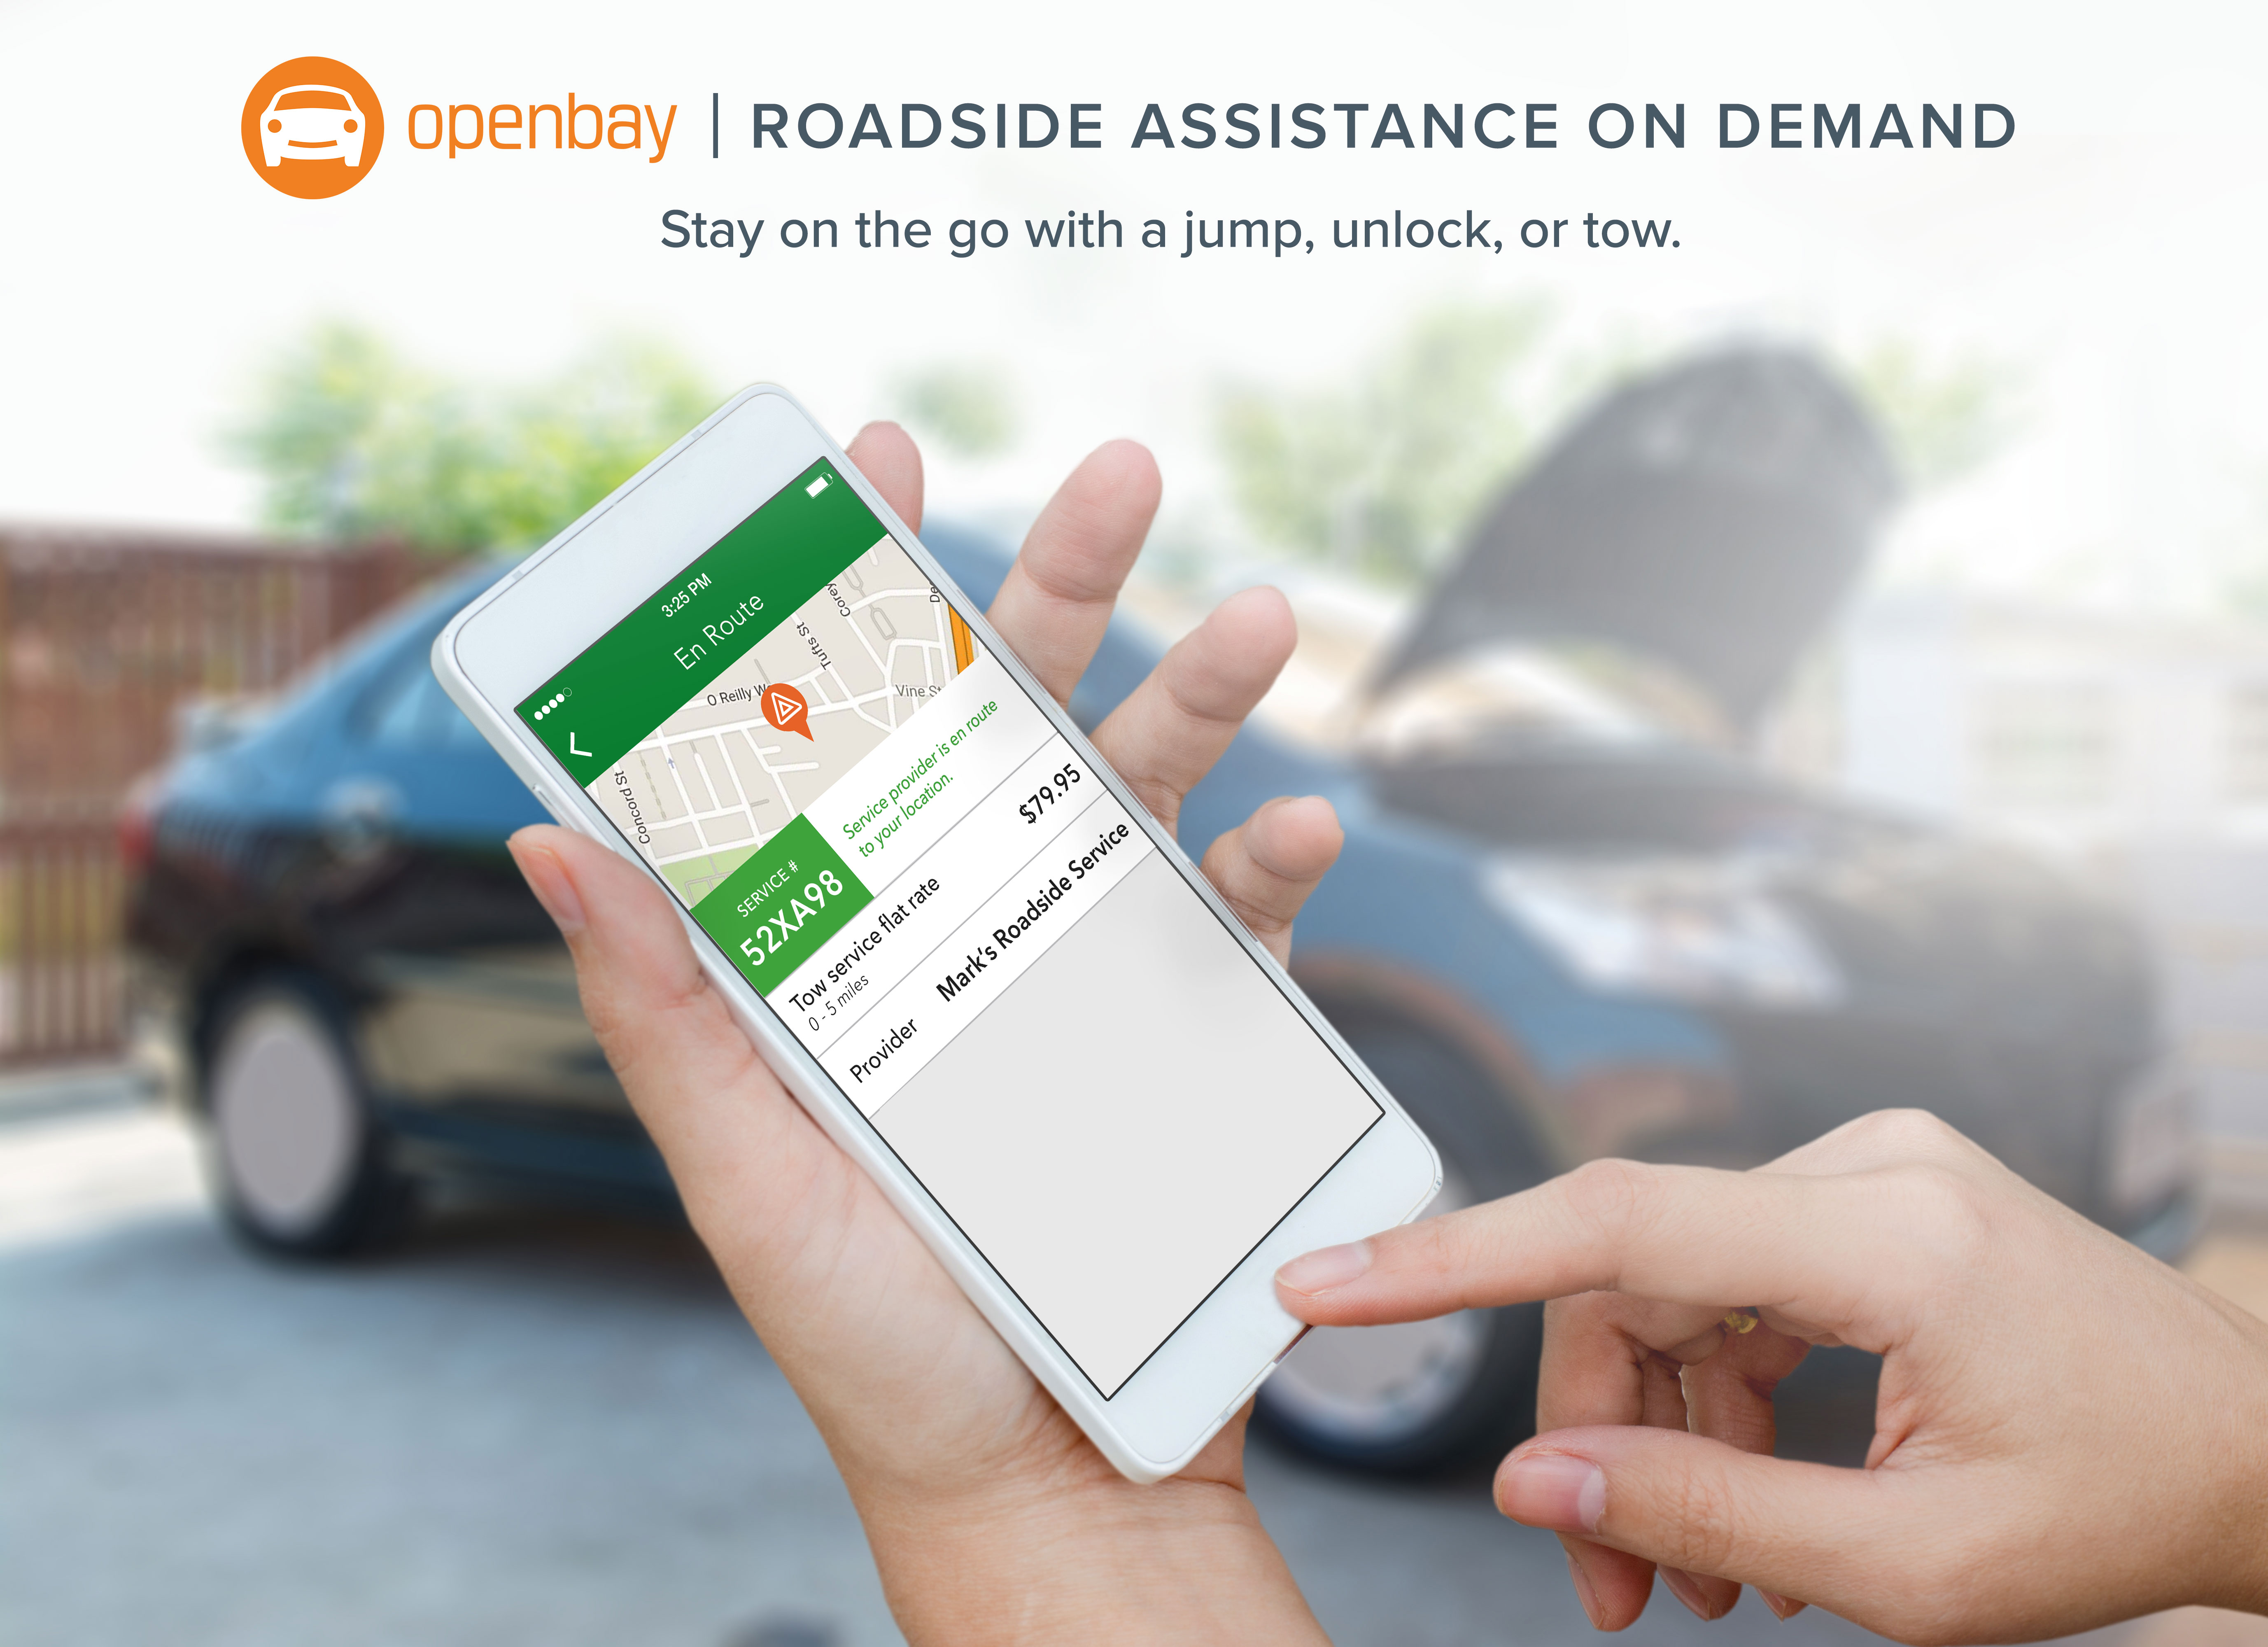 Openbay Roadside Assistance, stay on the go